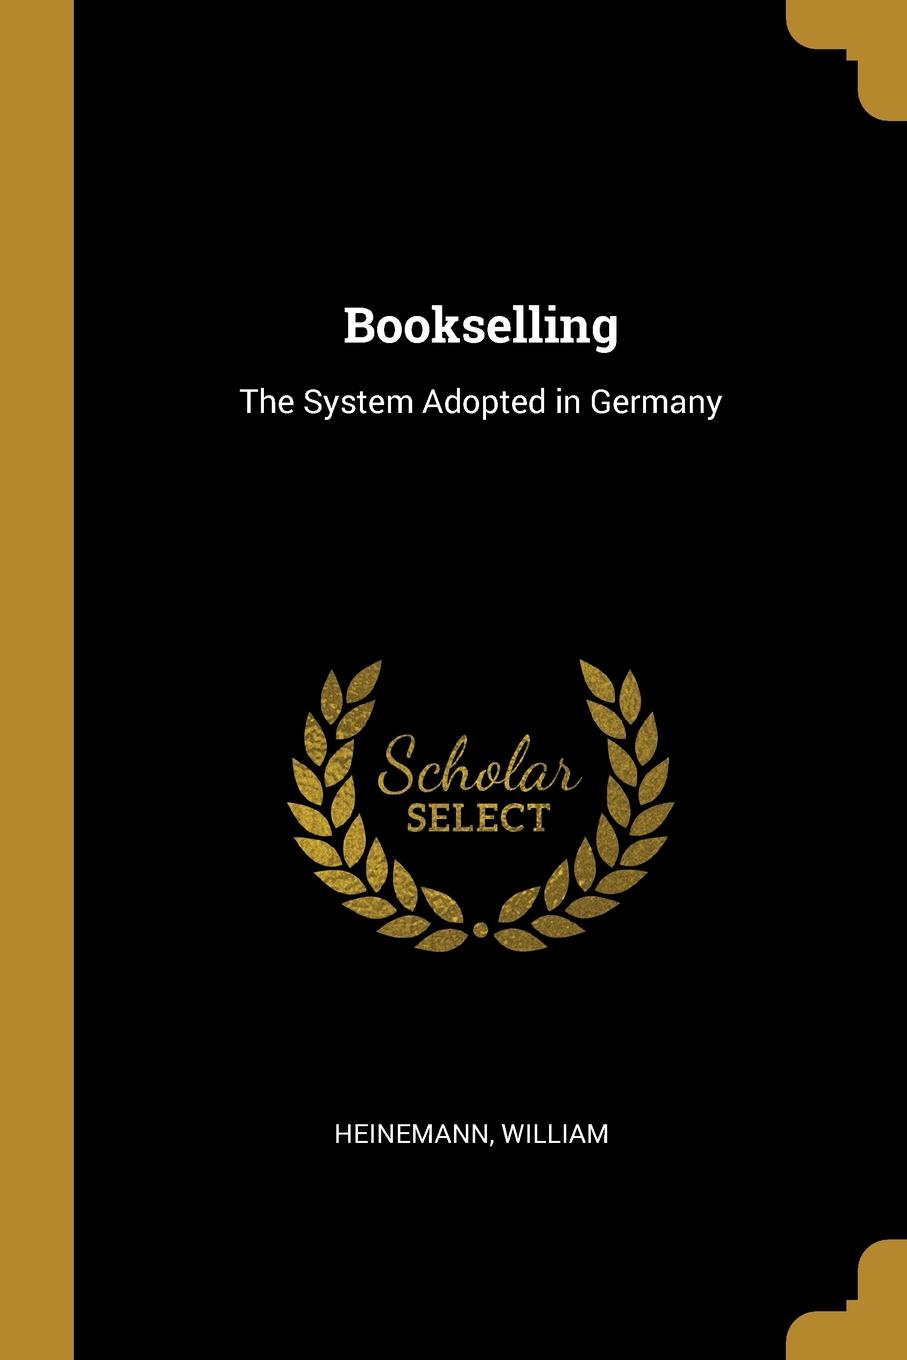 Heinemann William. Bookselling. The System Adopted in Germany